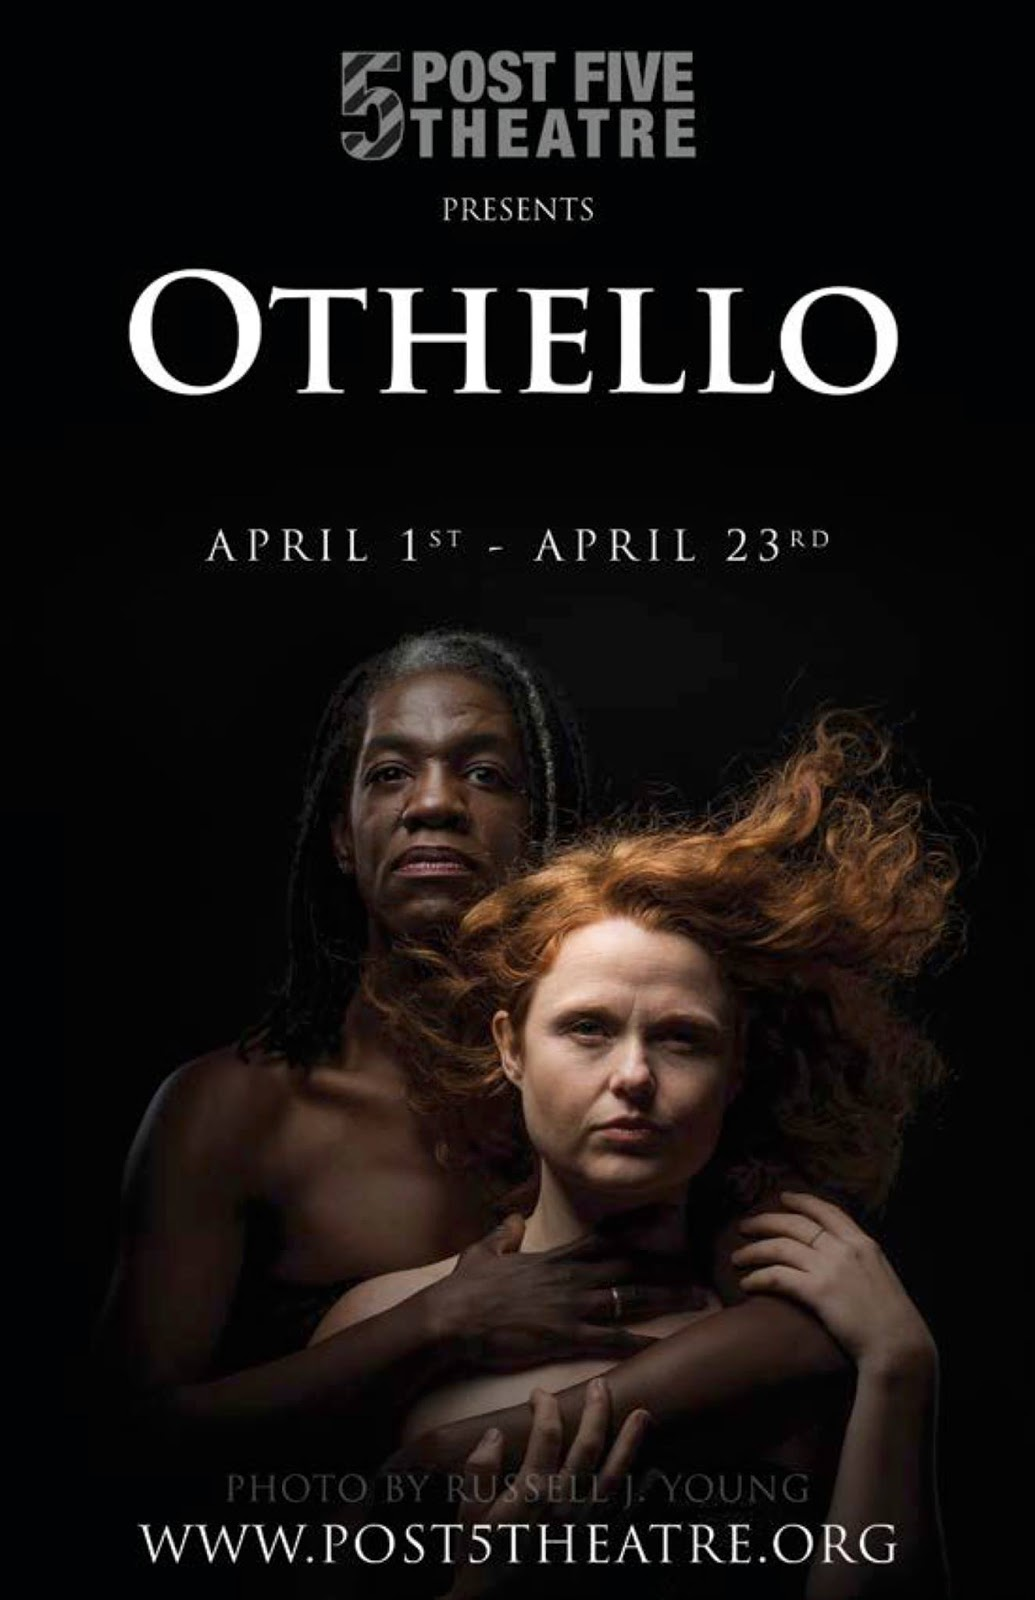 Theatre Reviews By Dennis Sparks Othello Post 5 Theatre